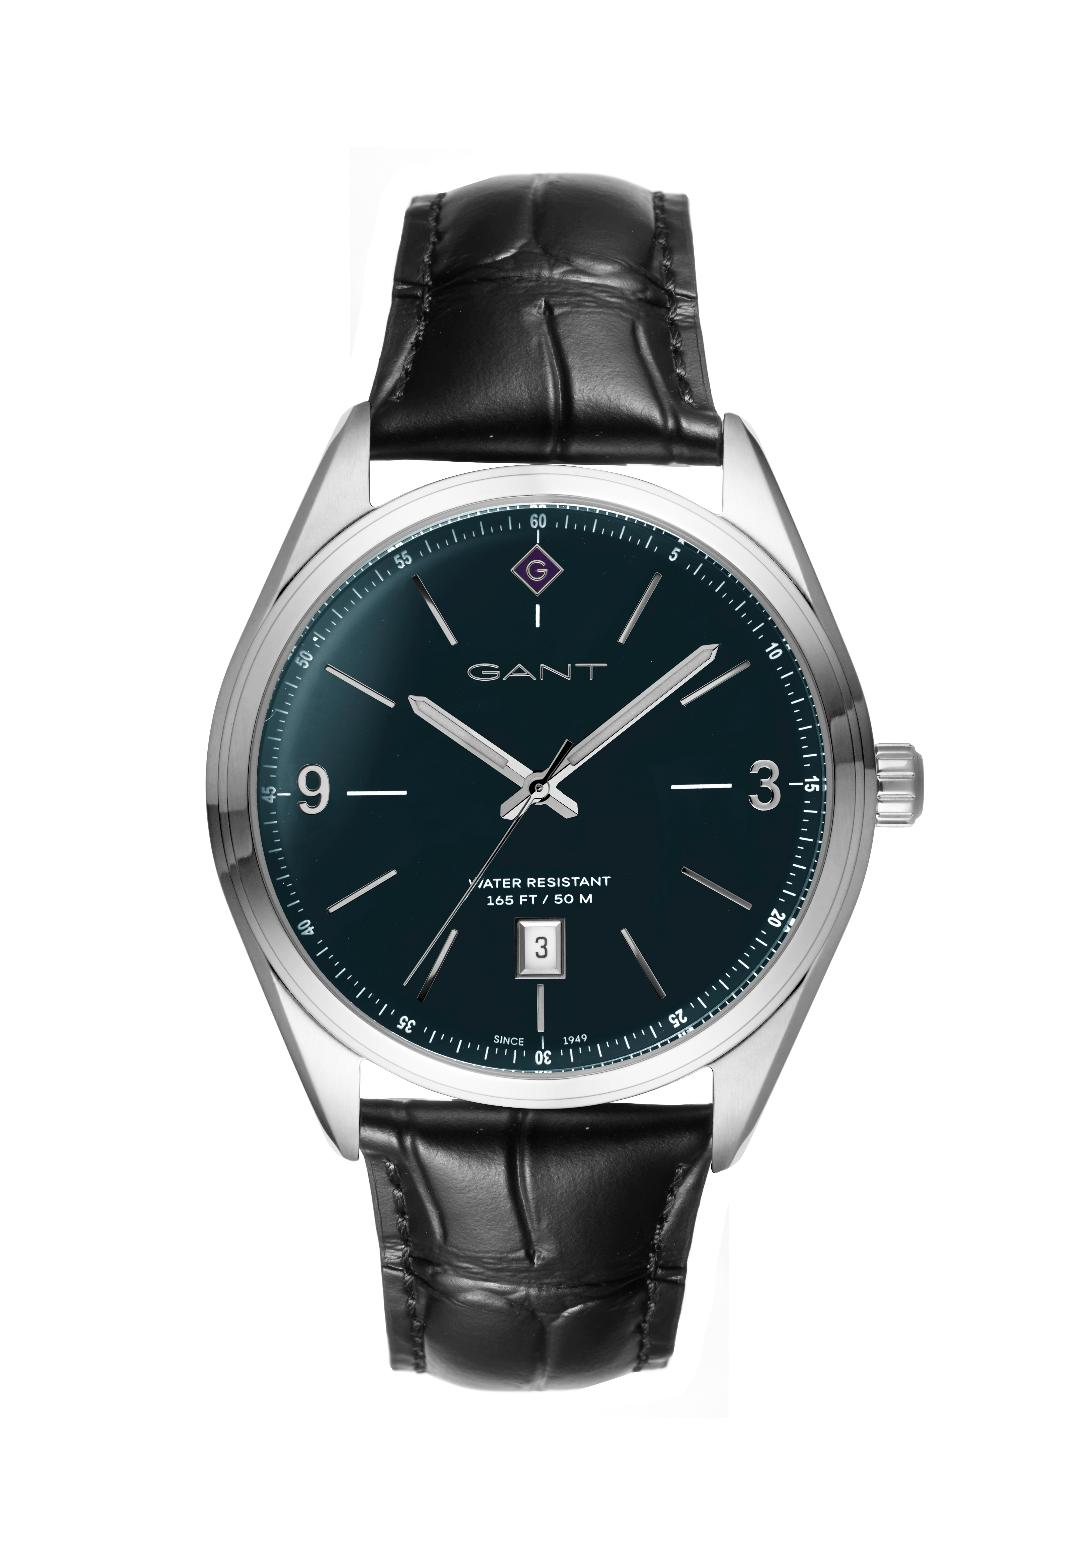 Ανδρικό Ρολόι GANT Crestwood Stainless Steel Black Leather Strap.